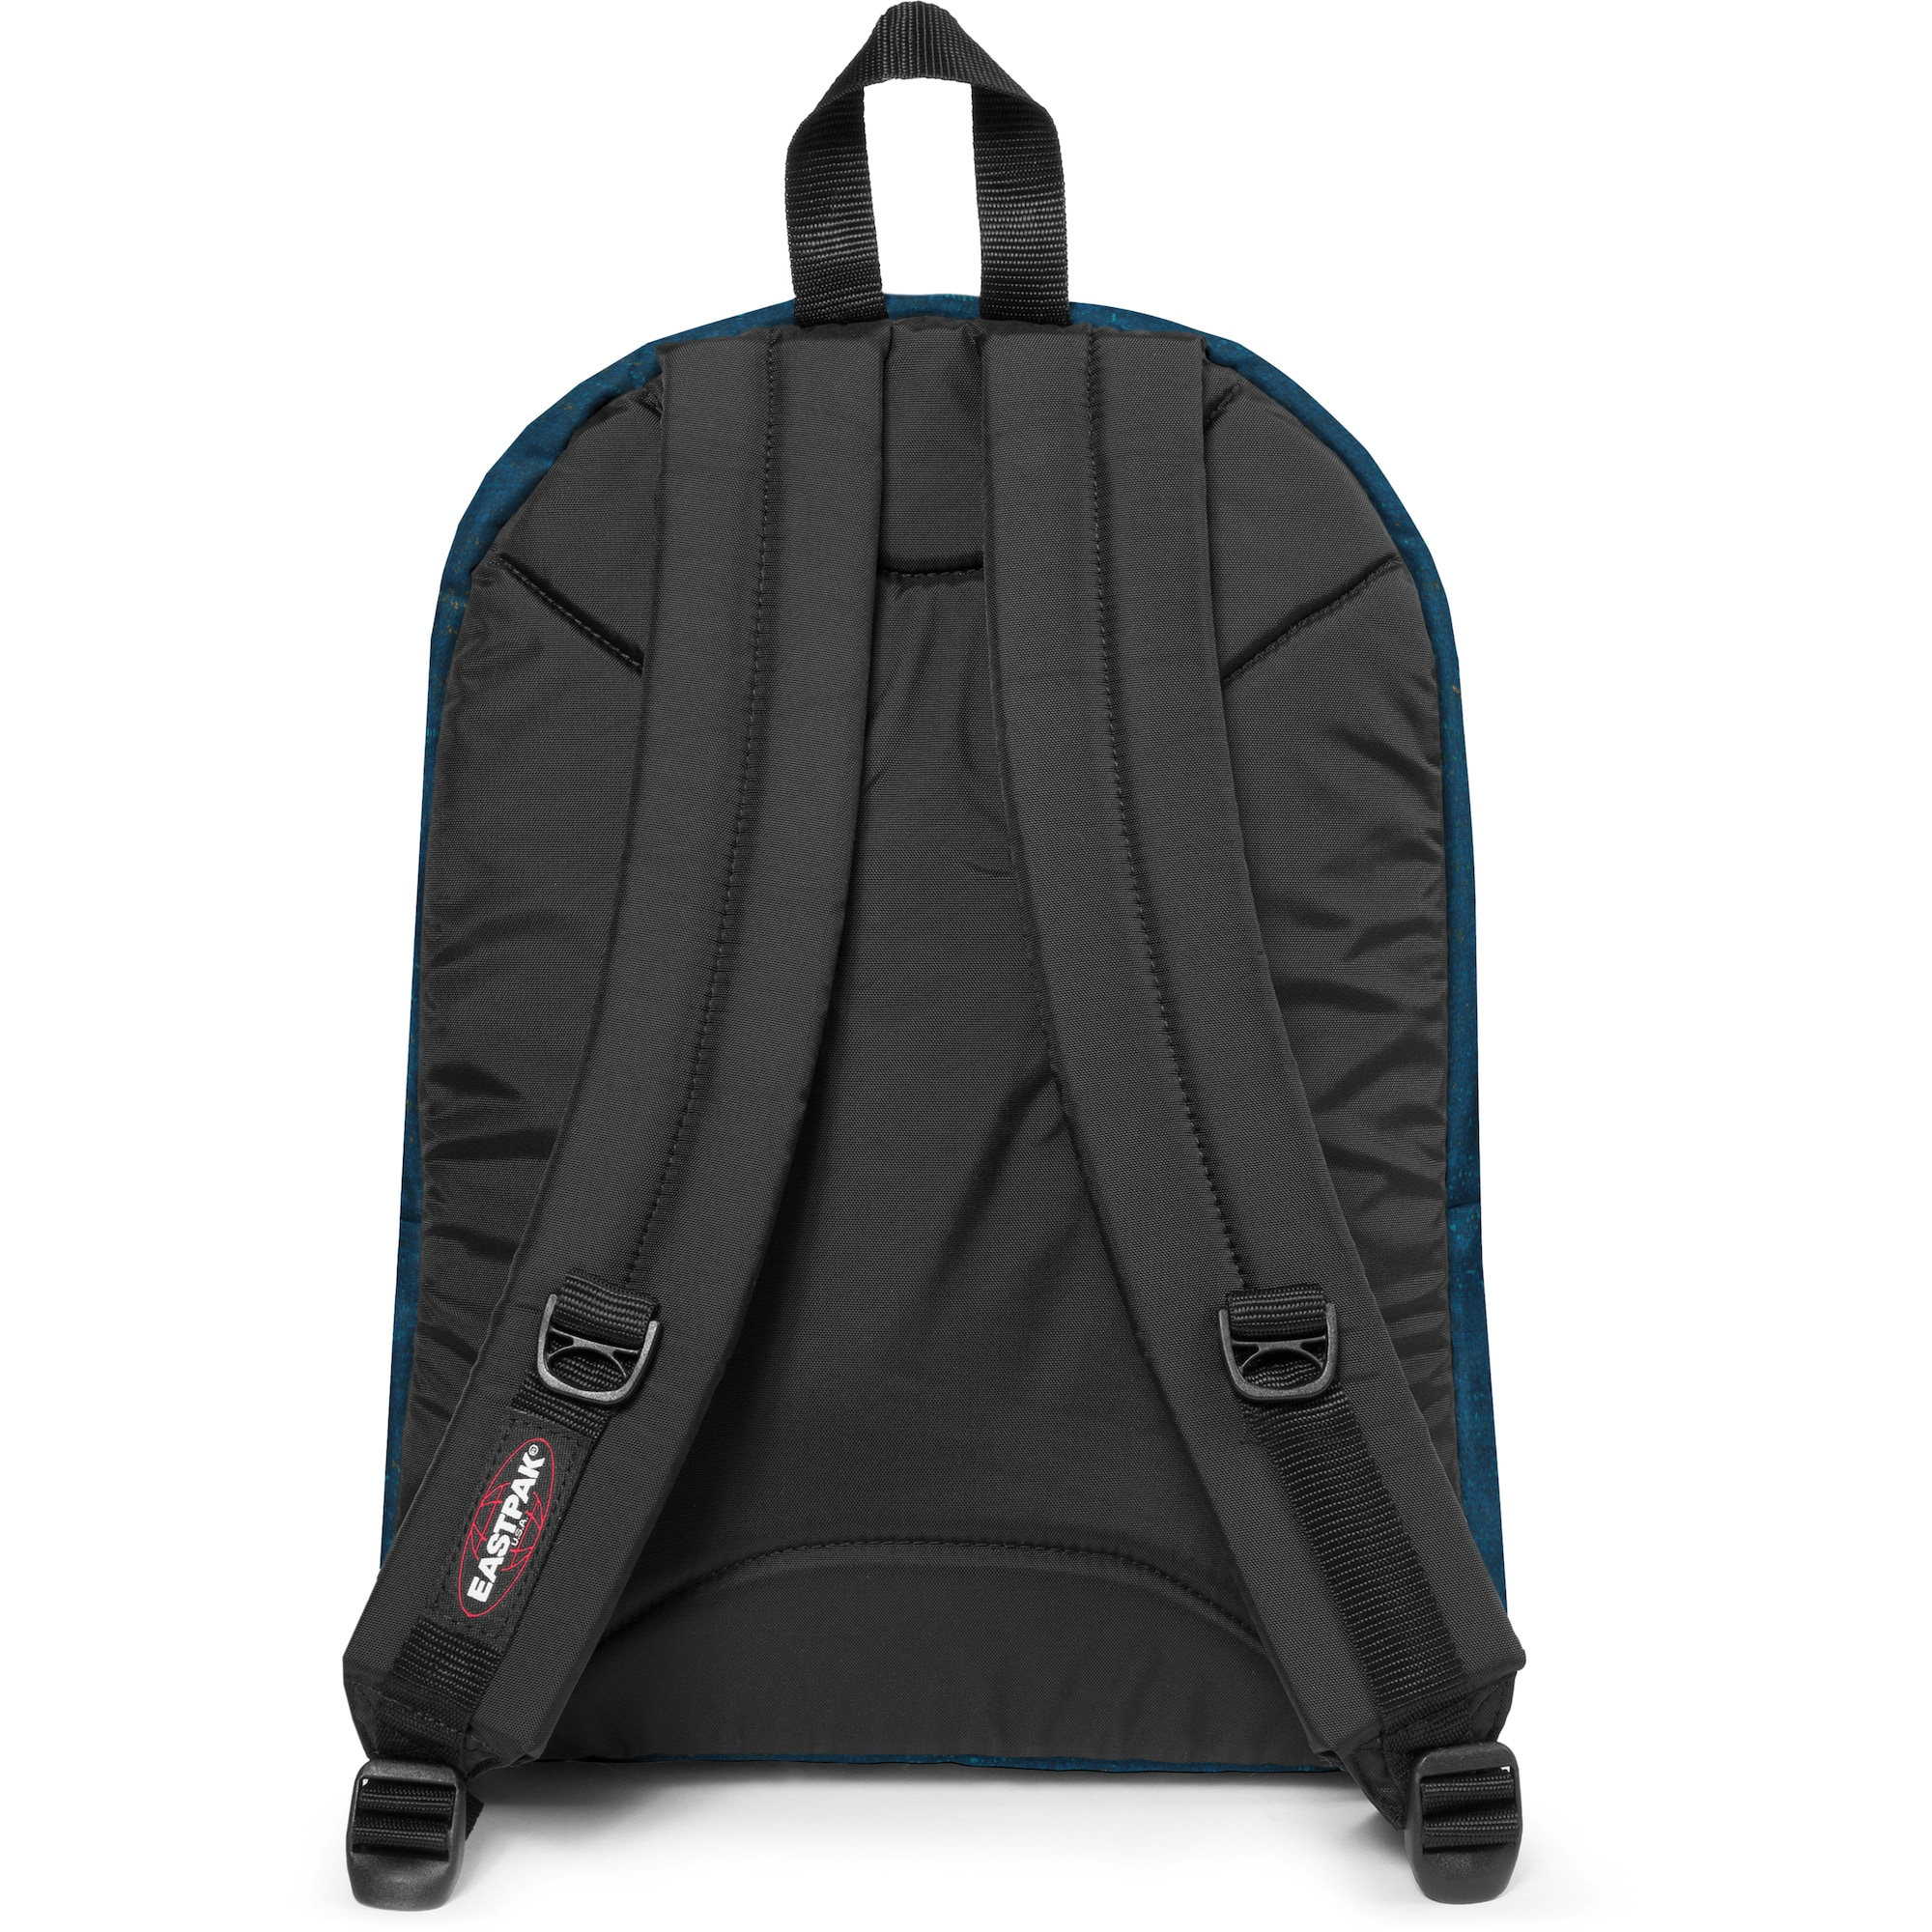 eastpak - Rucksack 'Pinnacle'